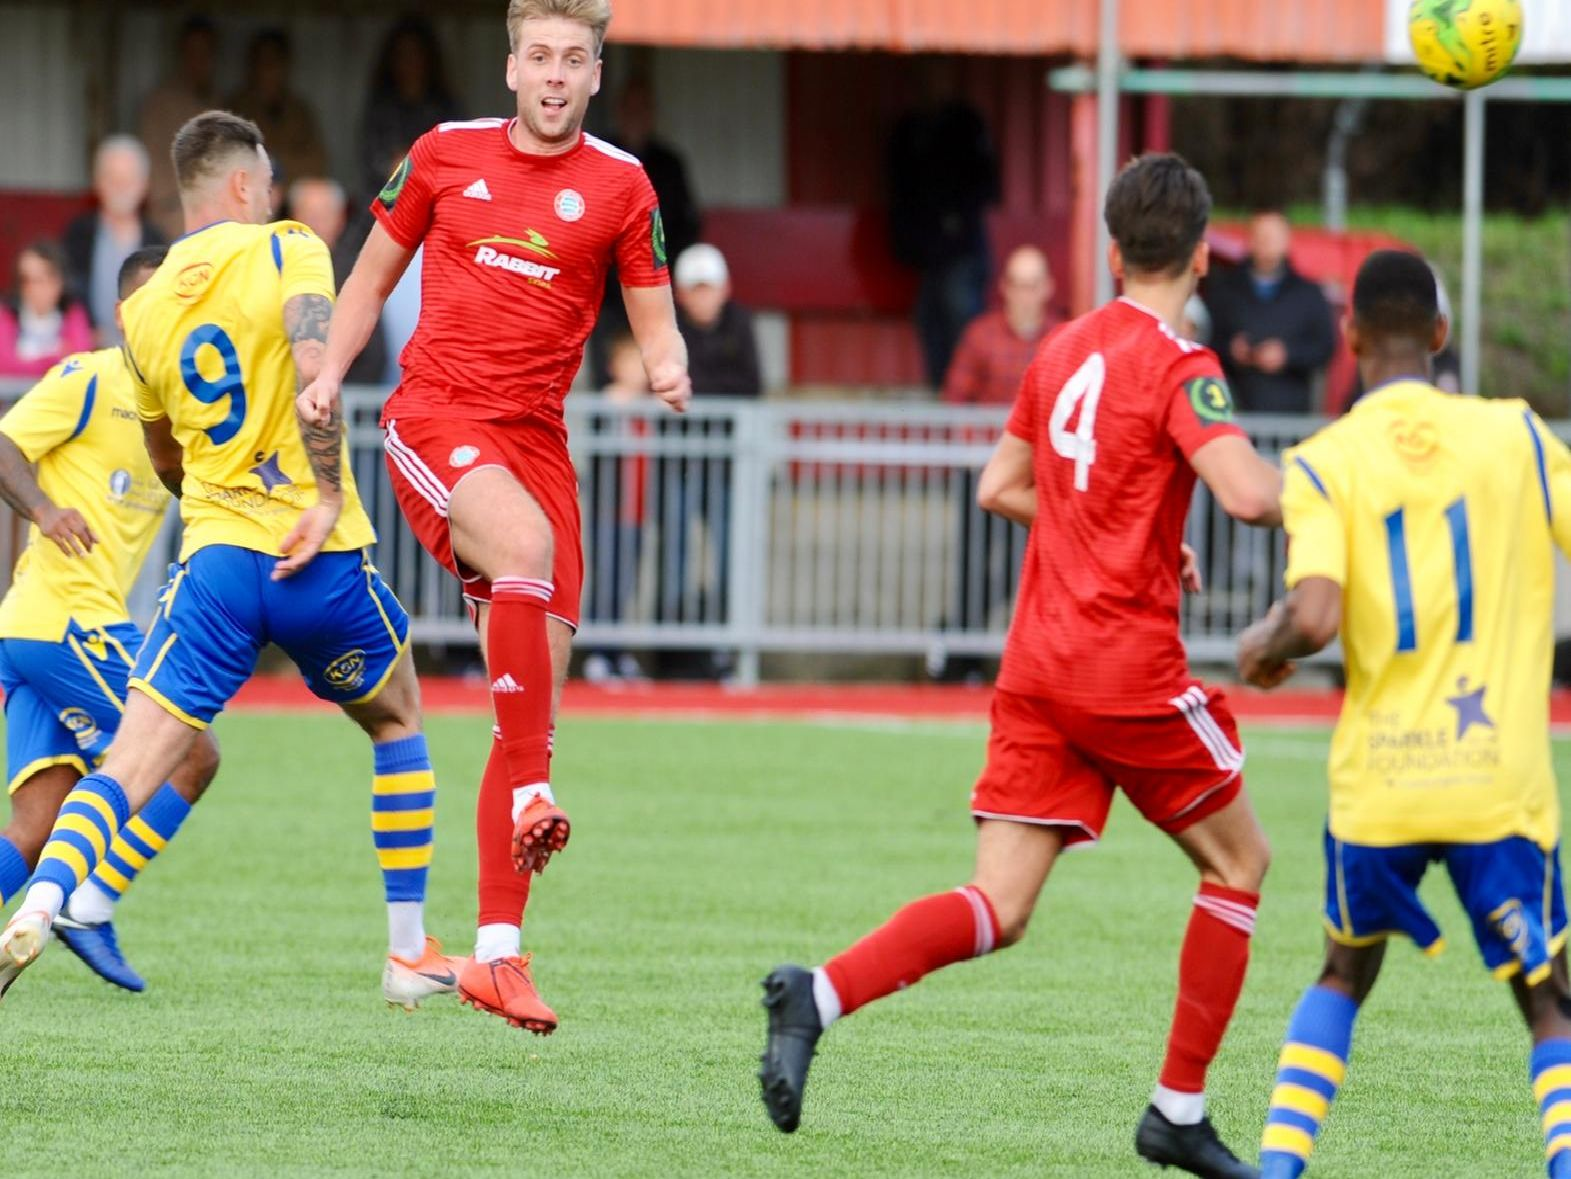 Action from Worthing v Kingstonian